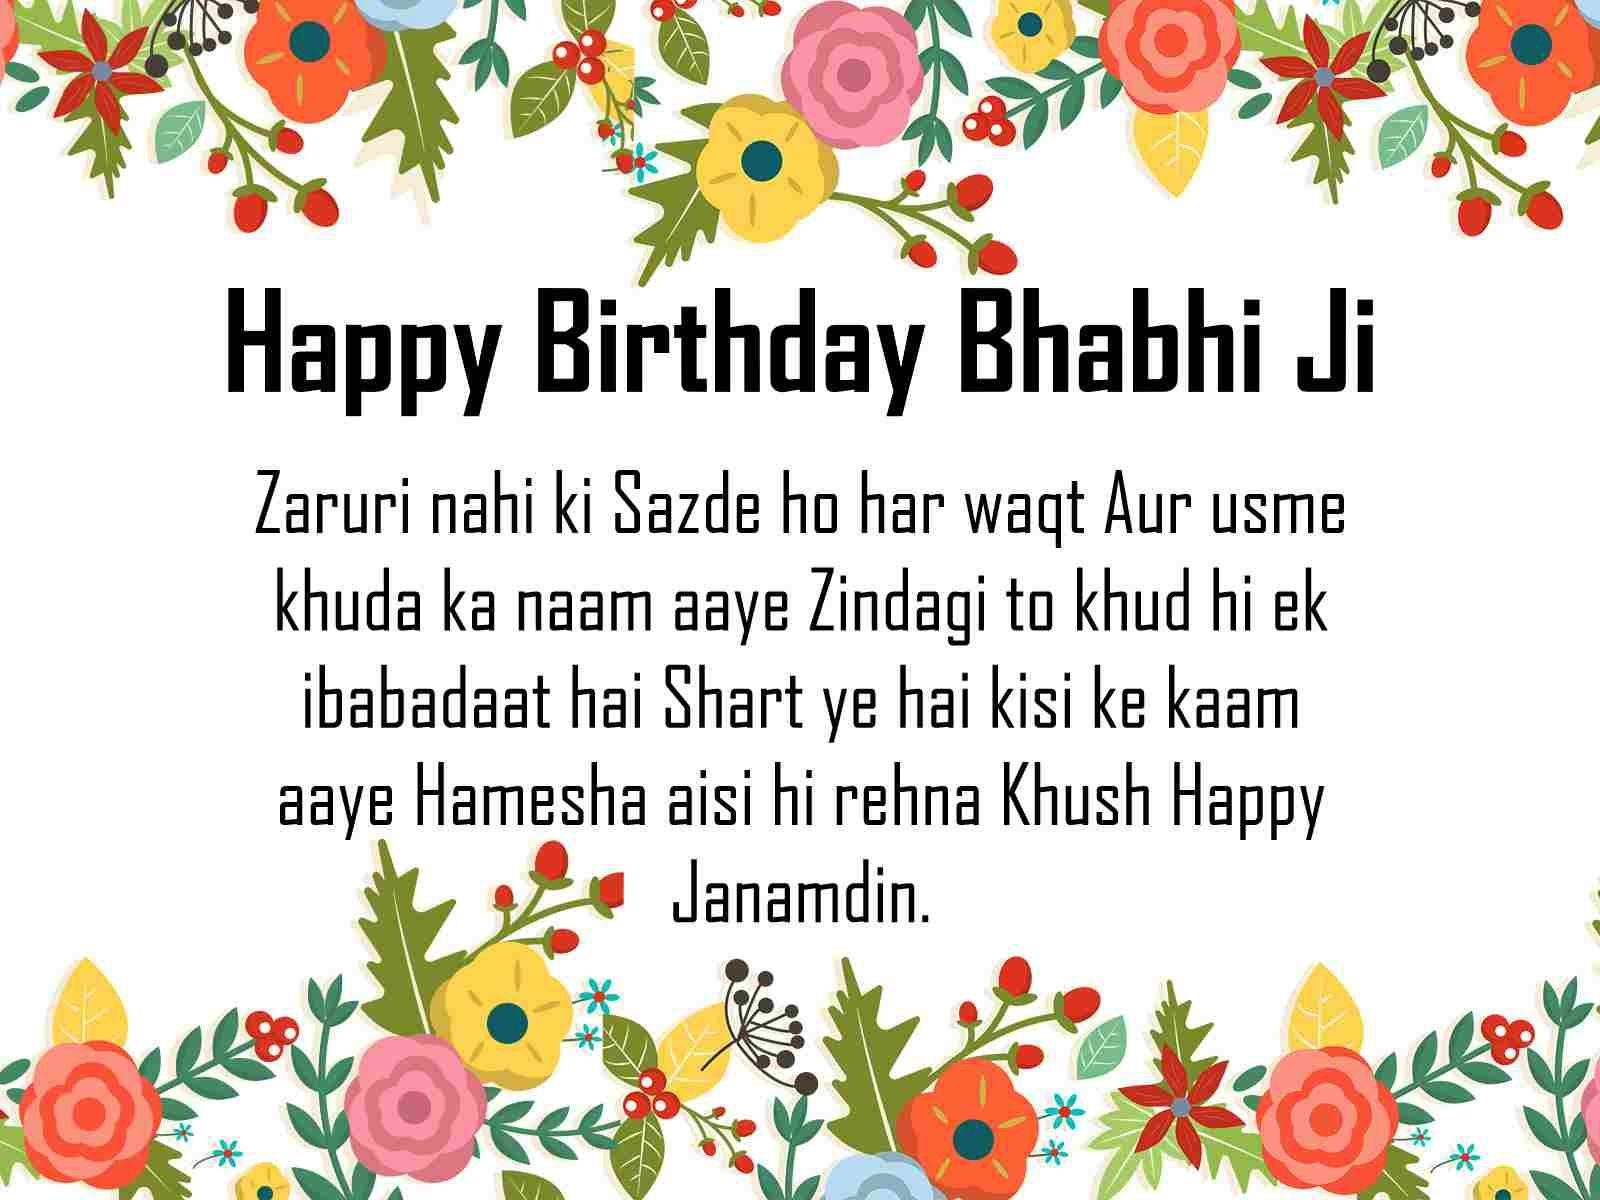 Pin By Juli On Birthday Wiseh Happy Birthday Wishes Quotes Birthday Wishes For Girlfriend Birthday Wishes Quotes